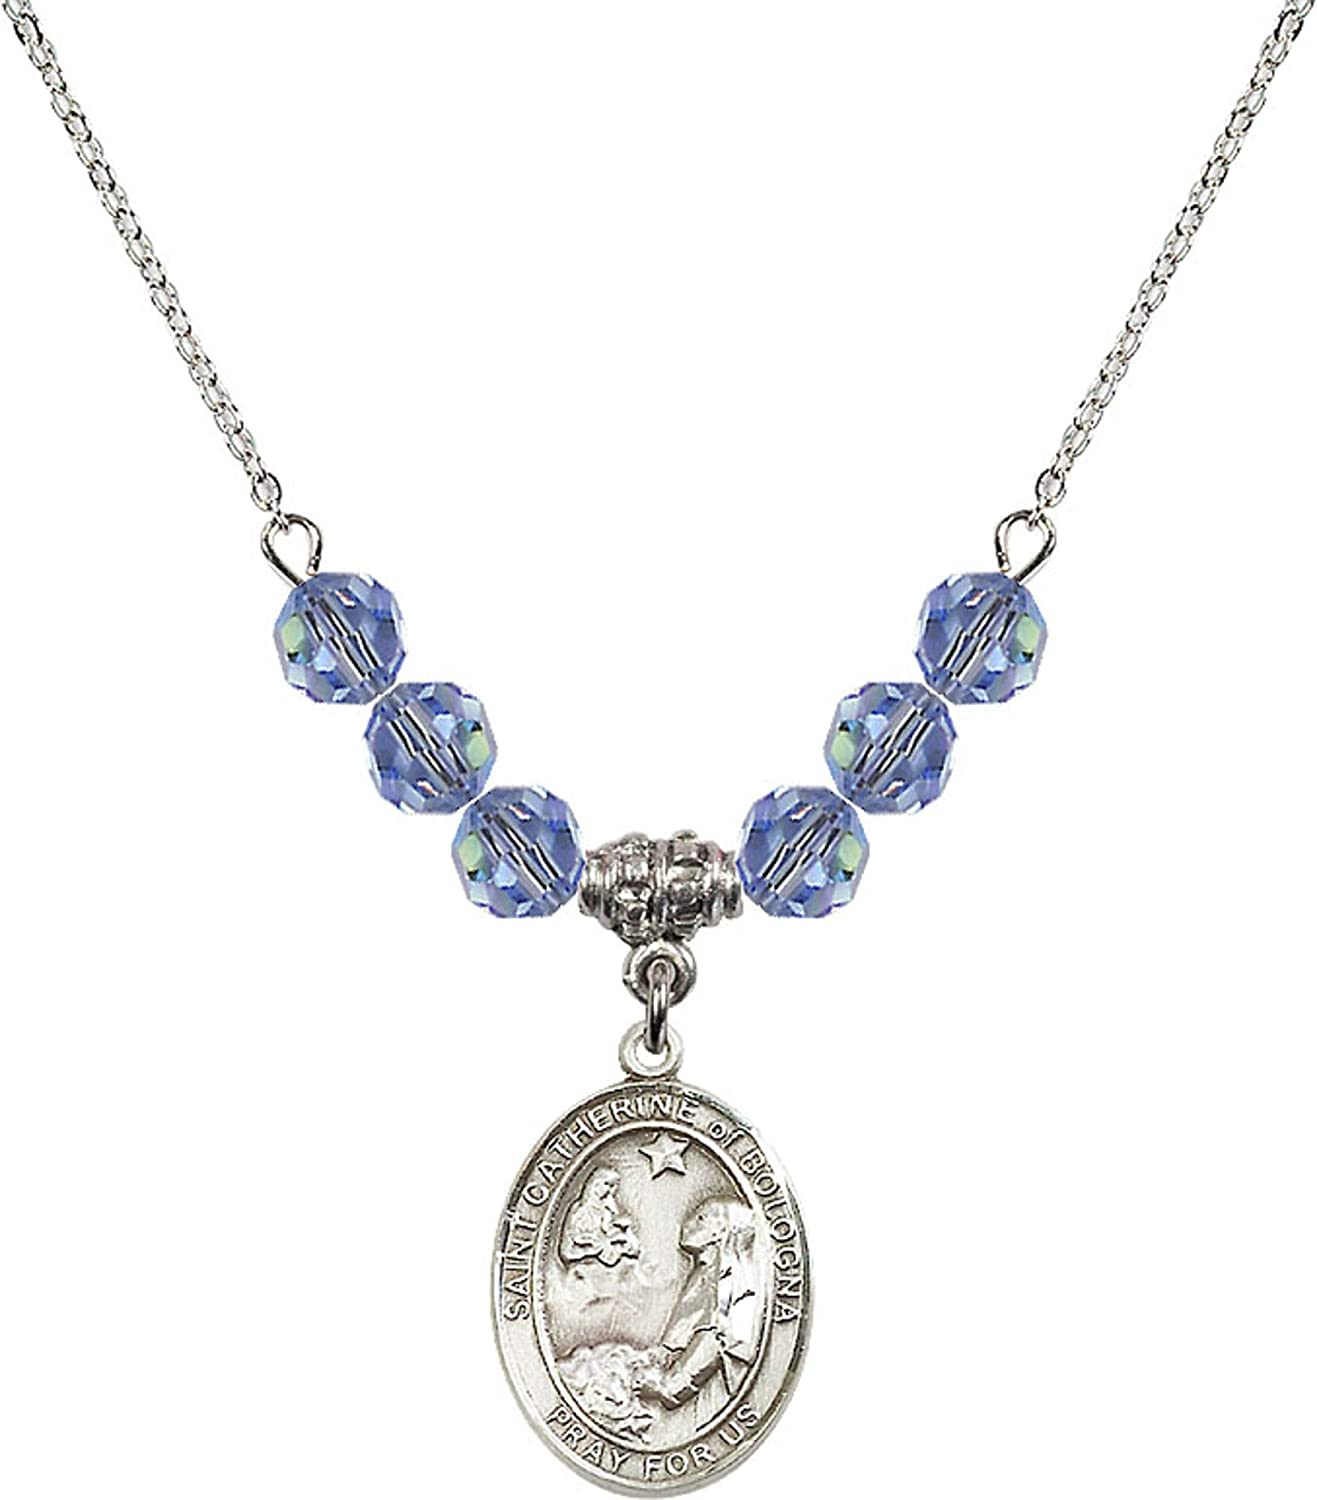 Bonyak Jewelry 18 Inch Rhodium Plated Necklace w// 6mm Light Blue September Birth Month Stone Beads and Saint Catherine of Bologna Charm